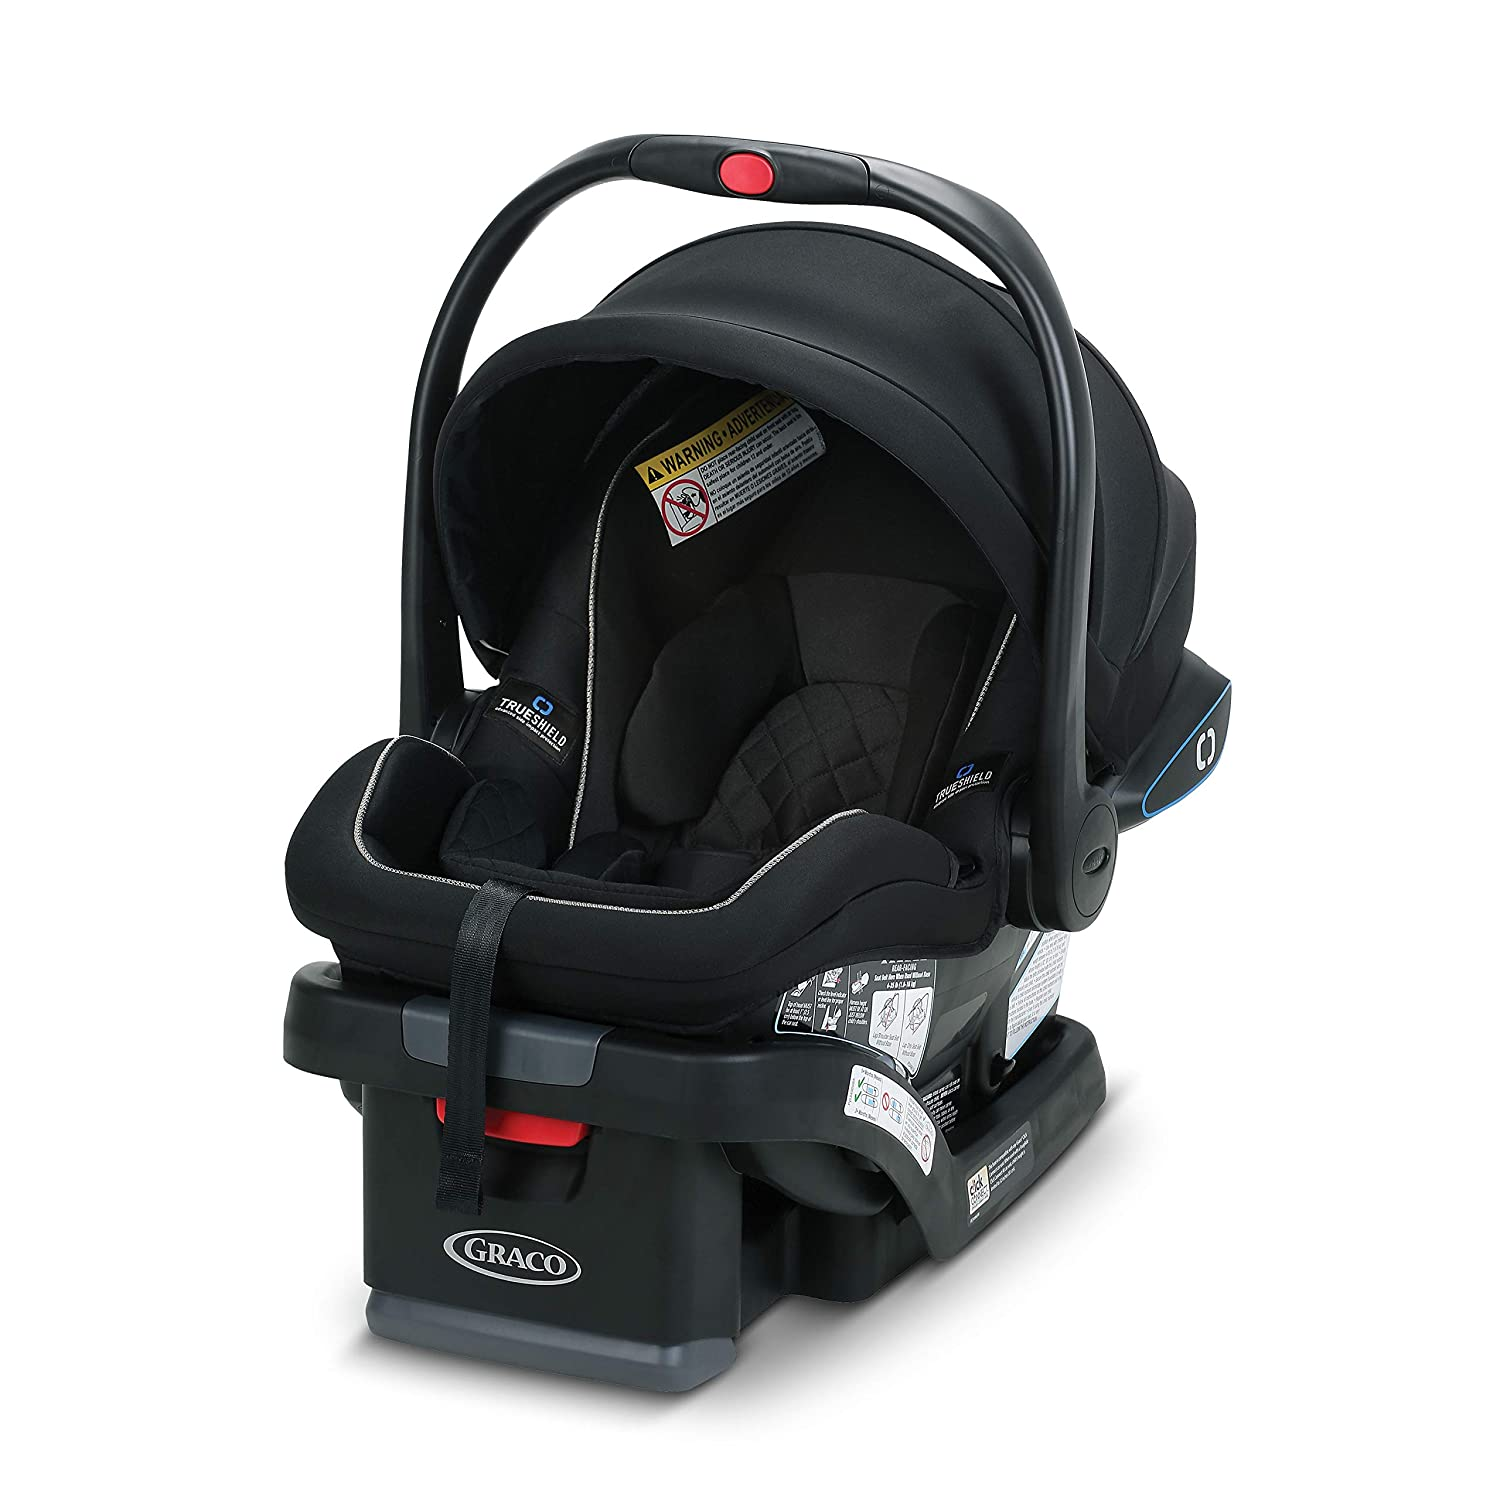 Graco SnugRide SnugLock 35 LX Infant Car Seat Baby Car Seat Featuring TrueShield Side Impact Technology